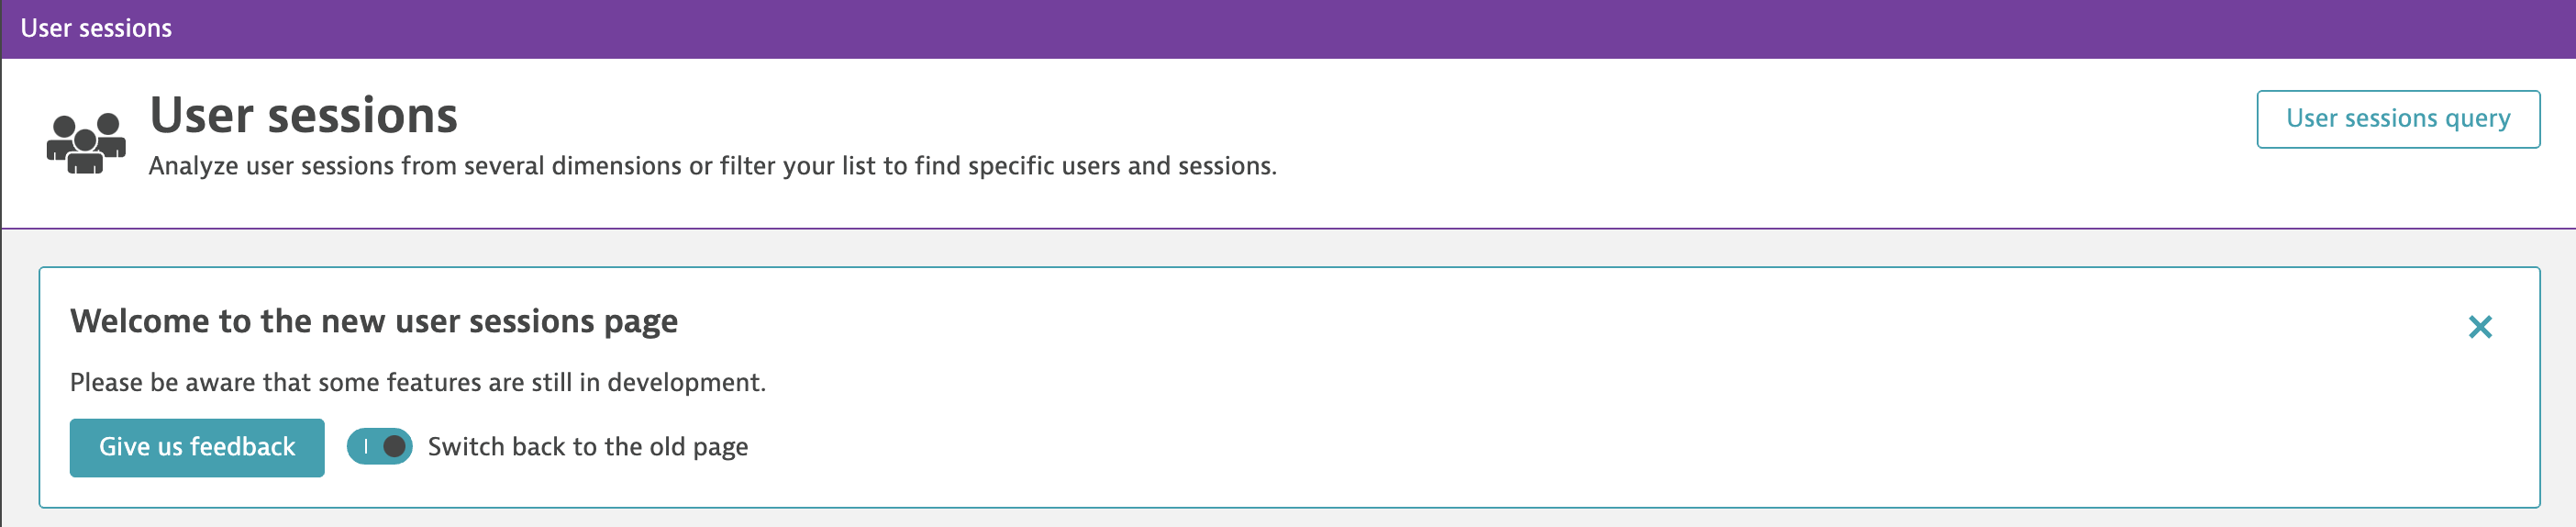 Opt out of the new User sessions view